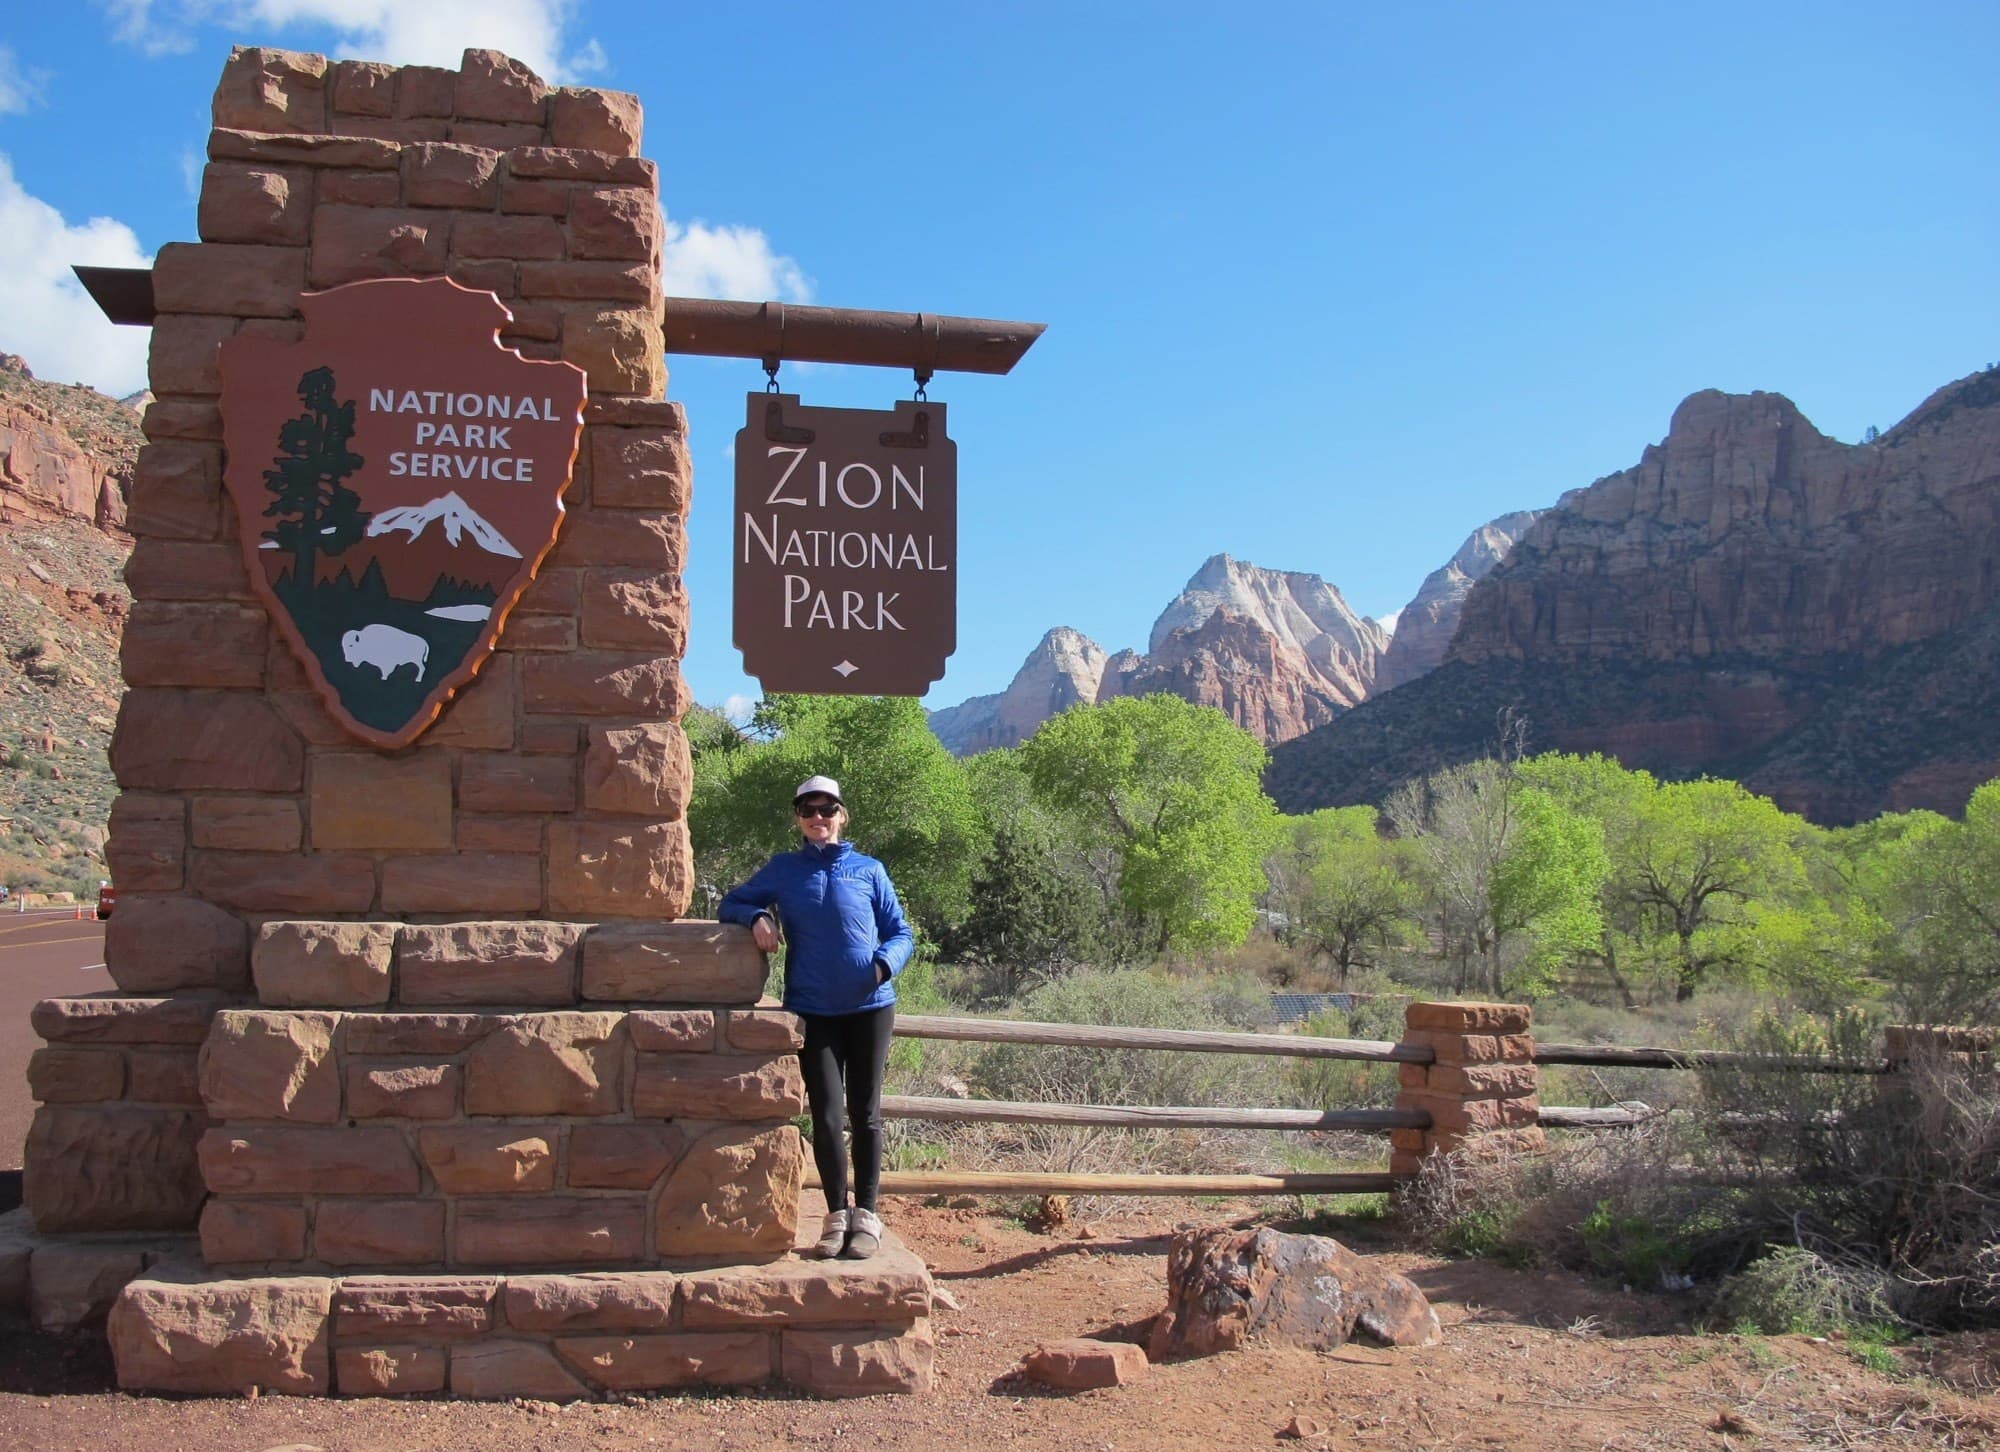 The Essential Zion National Park Travel Guide – Bearfoot Theory on shenandoah np map, national capital region map, arches np map, acadia np map, santa fe map, katmai np map, cuyahoga np map, big bend np map, capitol reef np map, rocky mountain np map, great basin np map, haleakala np map, glacier np map, canyonlands np map, denali np map, north cascades np map, everglades np map, crater lake np map, great sand dunes np map, badlands np map,